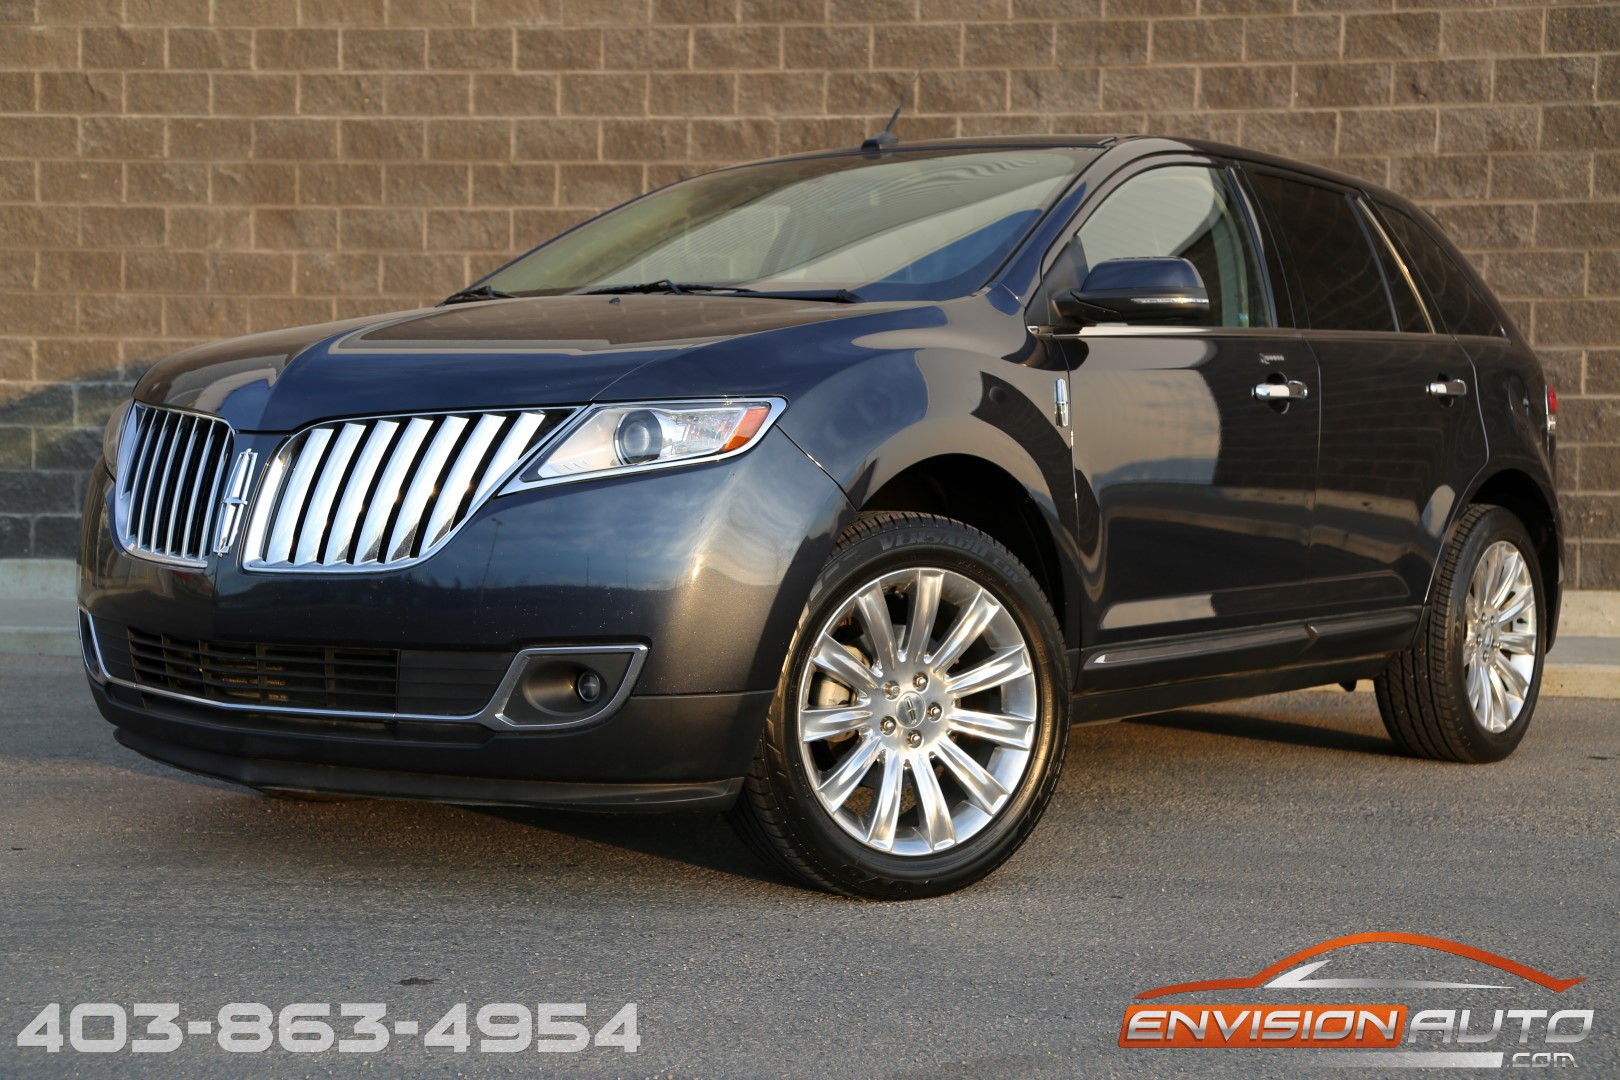 2013 lincoln mkx awd limited loaded low mileage envision auto calgary highline luxury sports. Black Bedroom Furniture Sets. Home Design Ideas